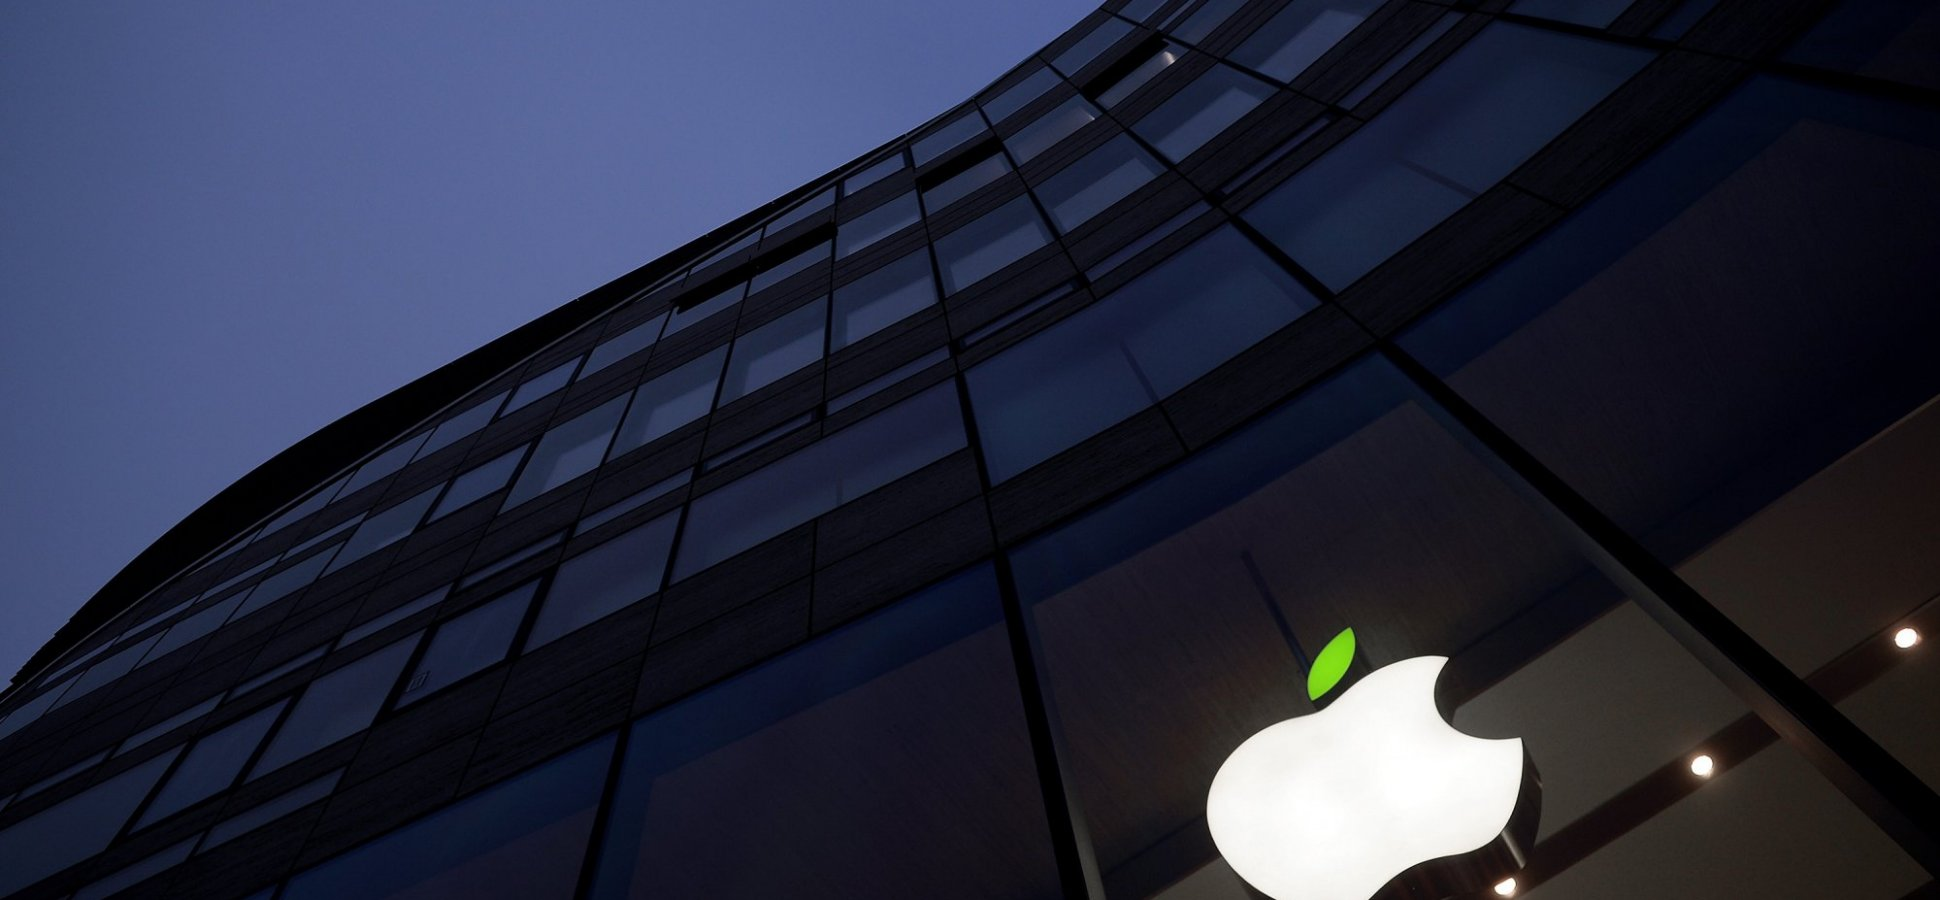 A 22-Year-Old Tried to Blackmail Apple for $100,000 in iTunes Gift Cards. Apple Didn't Take the Bait